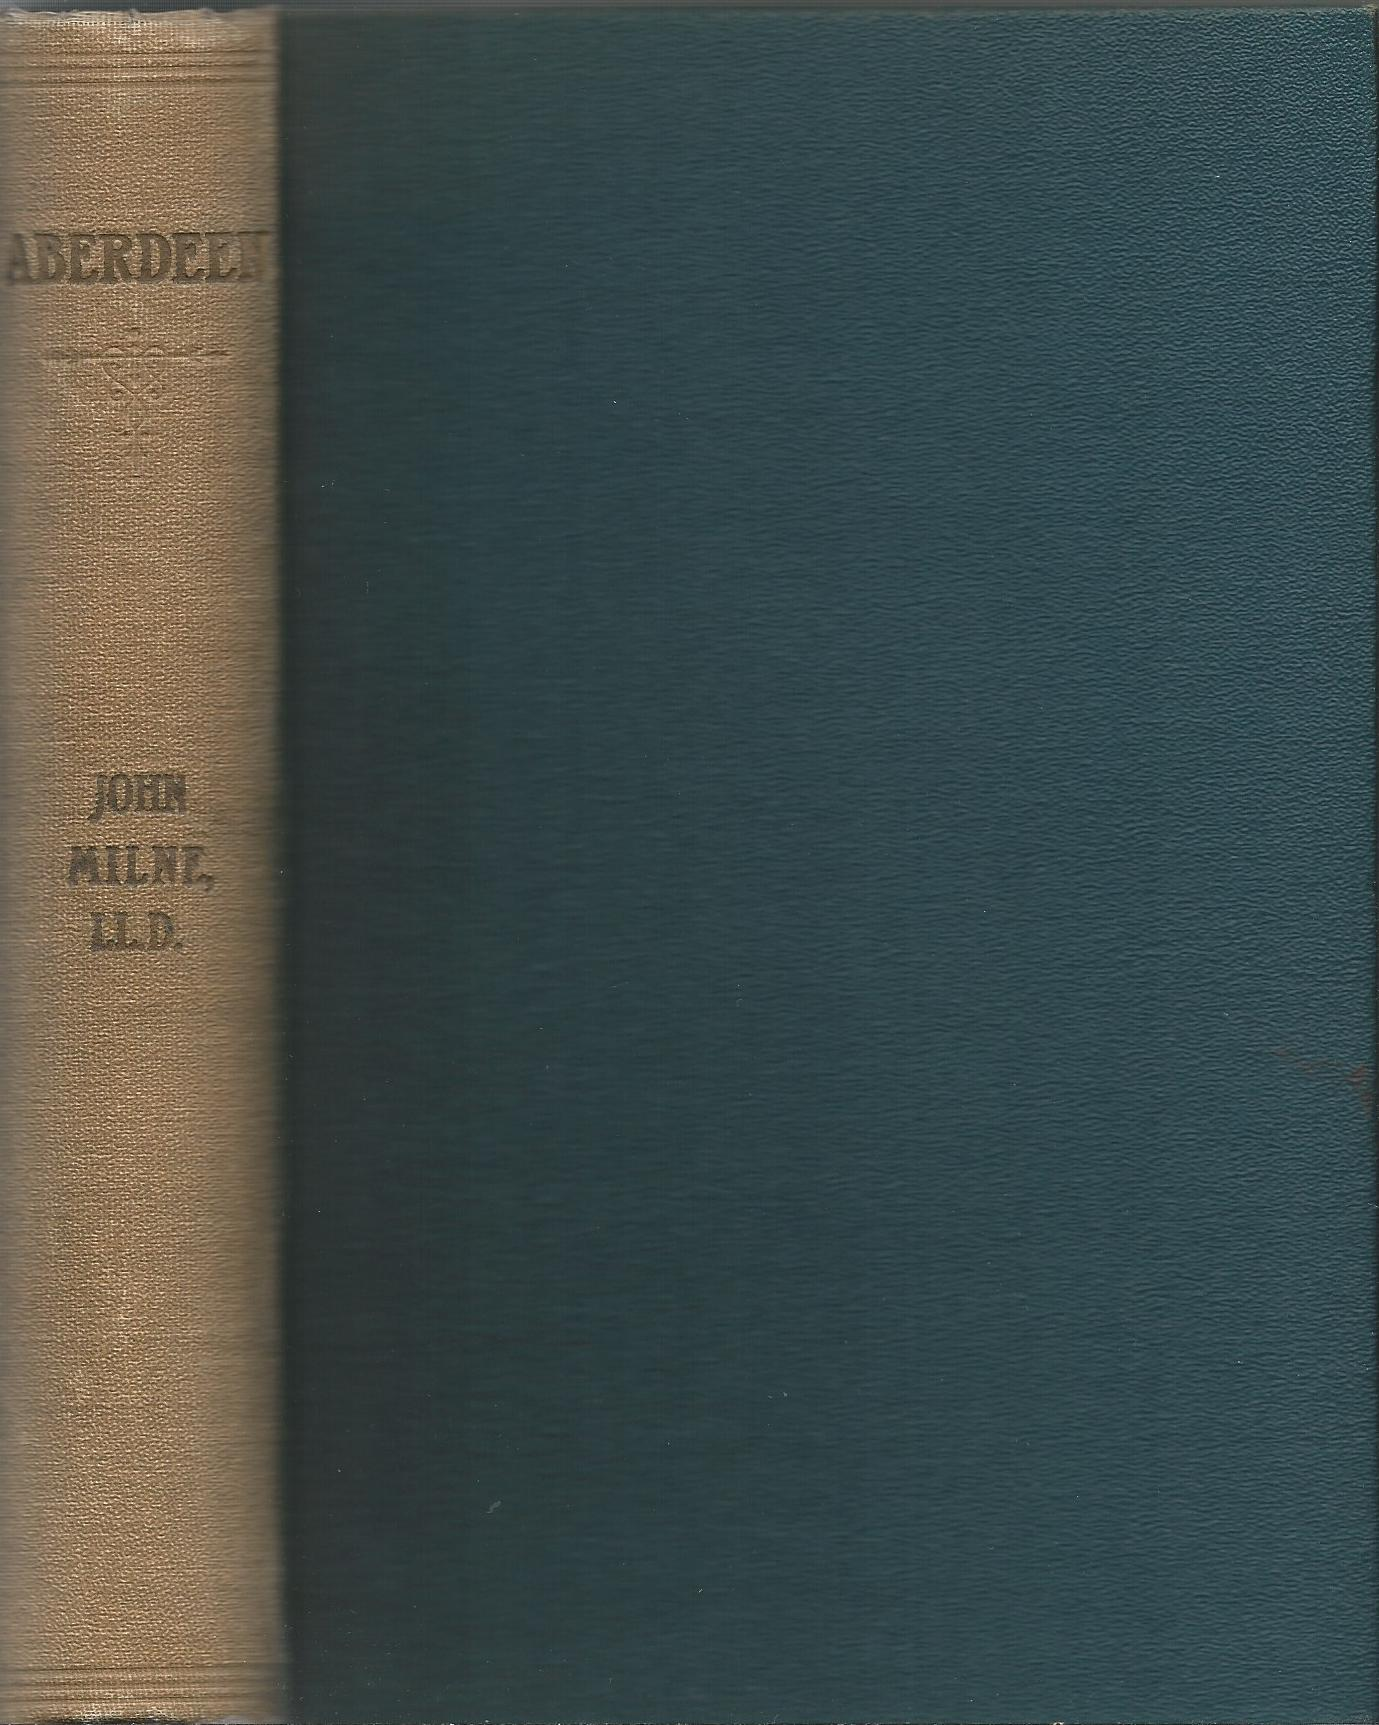 Image for Aberdeen: Topographical, Antiquarian, and Historical Papers on the City of Aberdeen